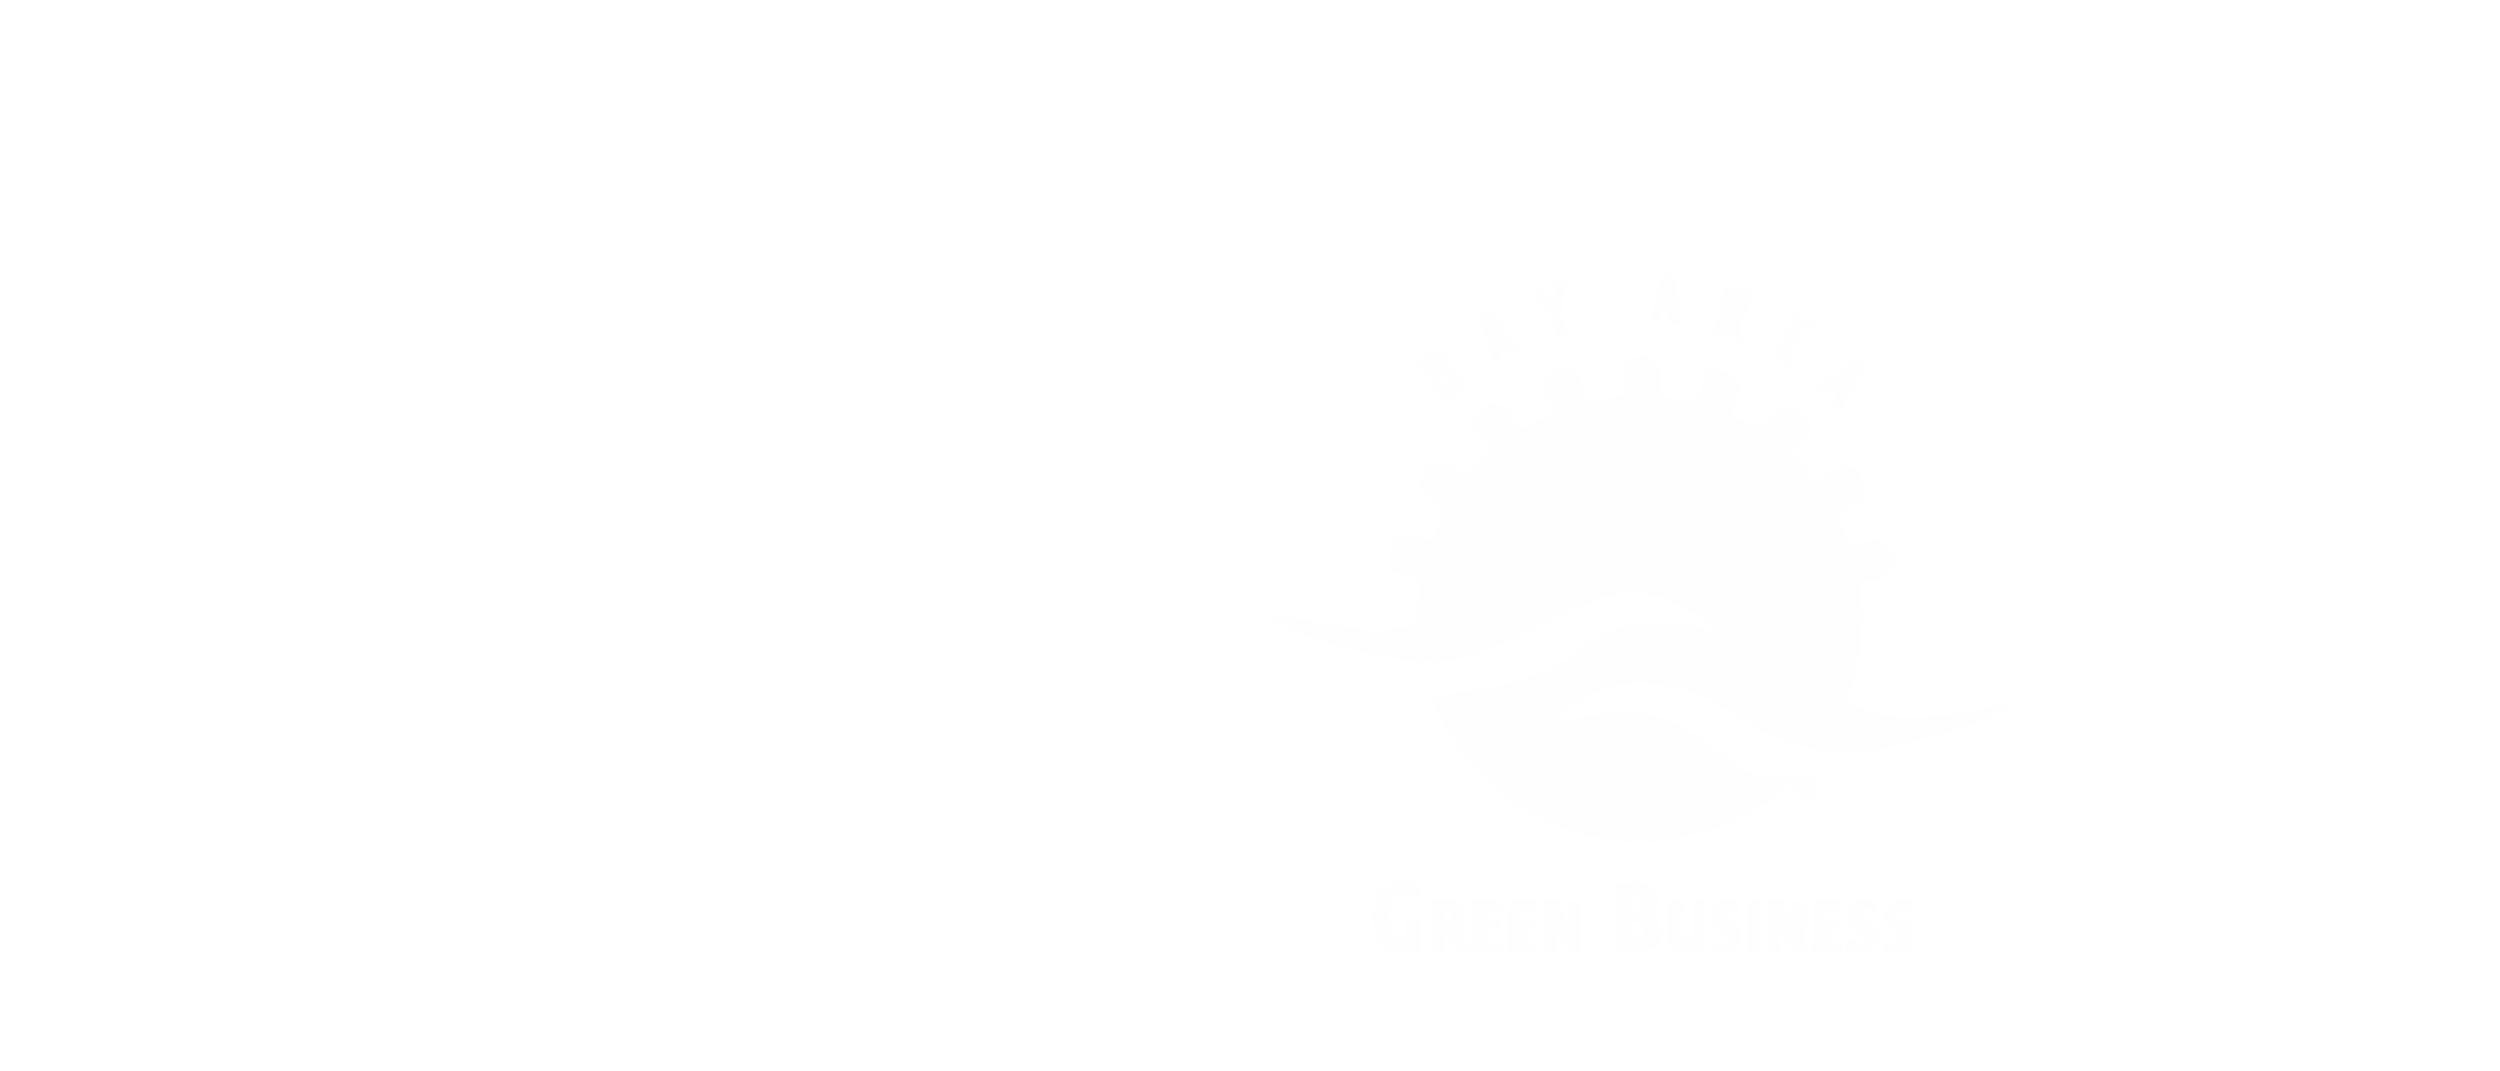 BPA Free.  Bay Area Certified Green Business.